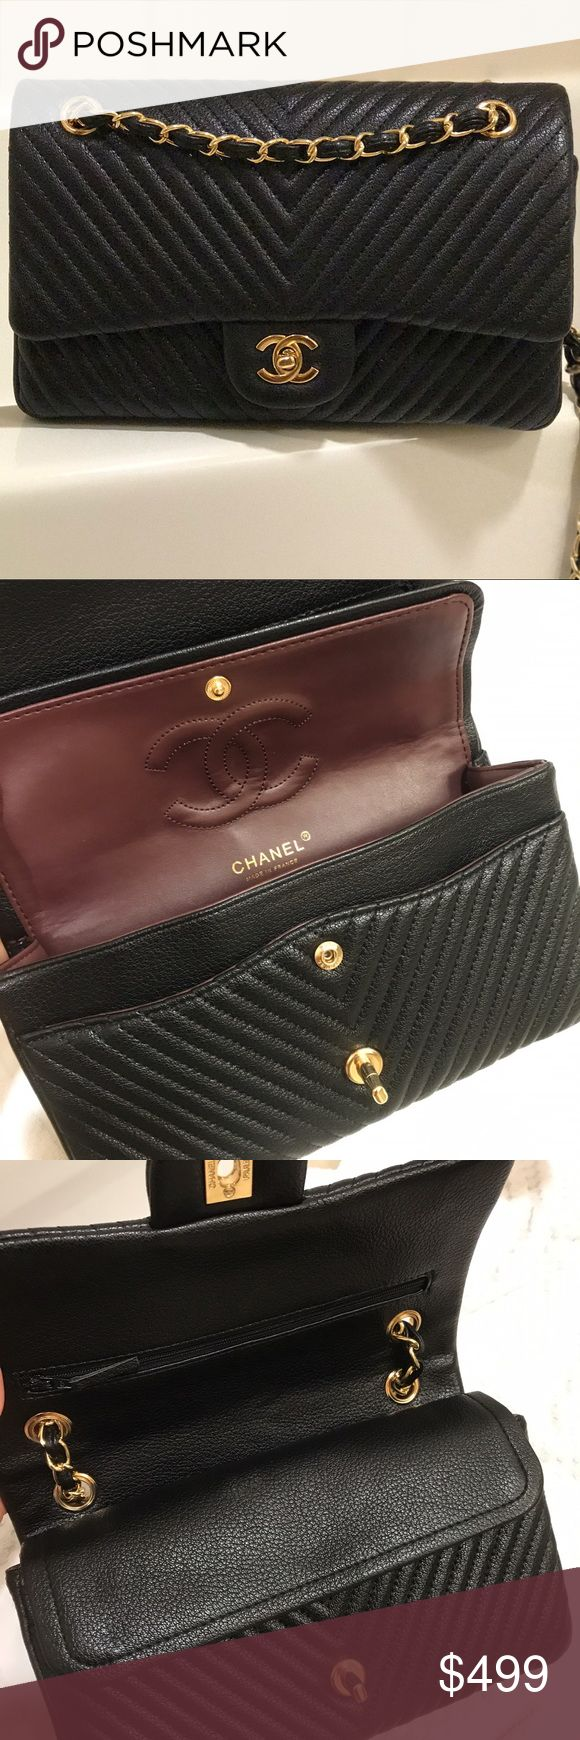 Classic medium chevron flap New never used medium chevron quilted flap bag. 100%real calfskin leather with gold HW. Outstanding quality bag! Price re flects!! Comes with dust bag and cards. CHANEL Bags Shoulder Bags